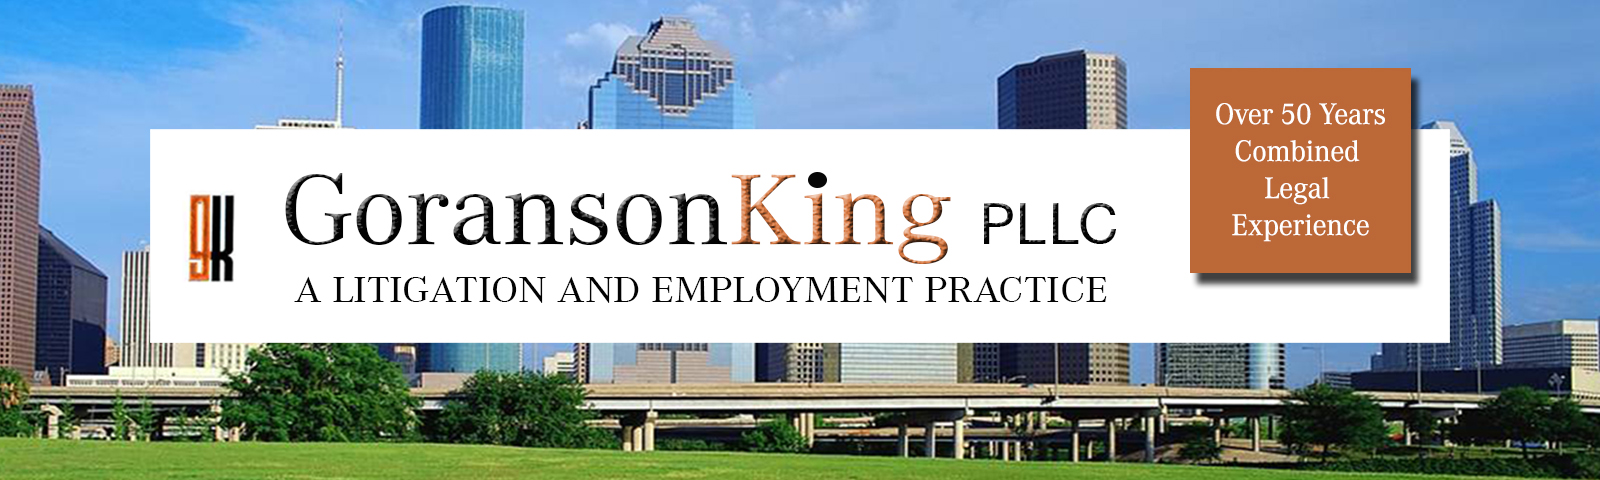 Goranson King PLLC